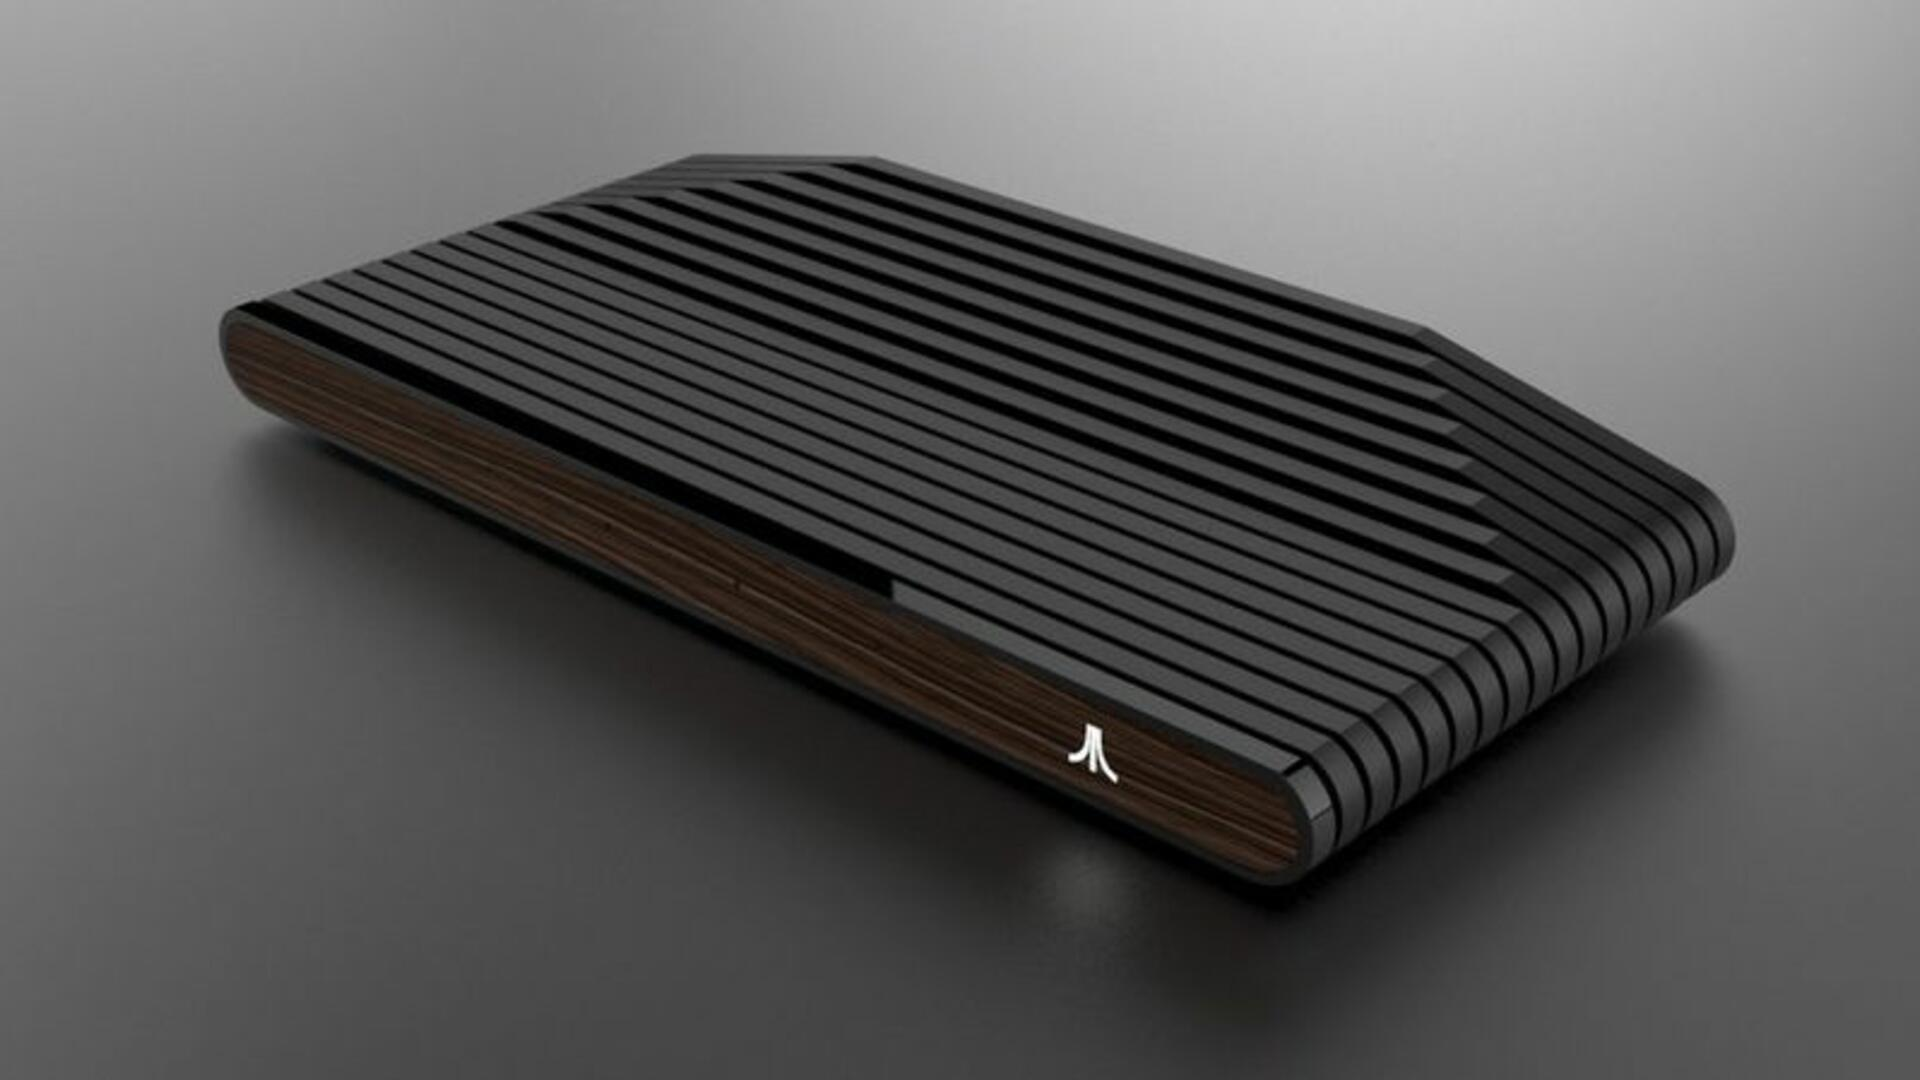 New Report Paints Fuzzy Picture for the Future of Atari's Throwback Box, Though Atari Disagrees